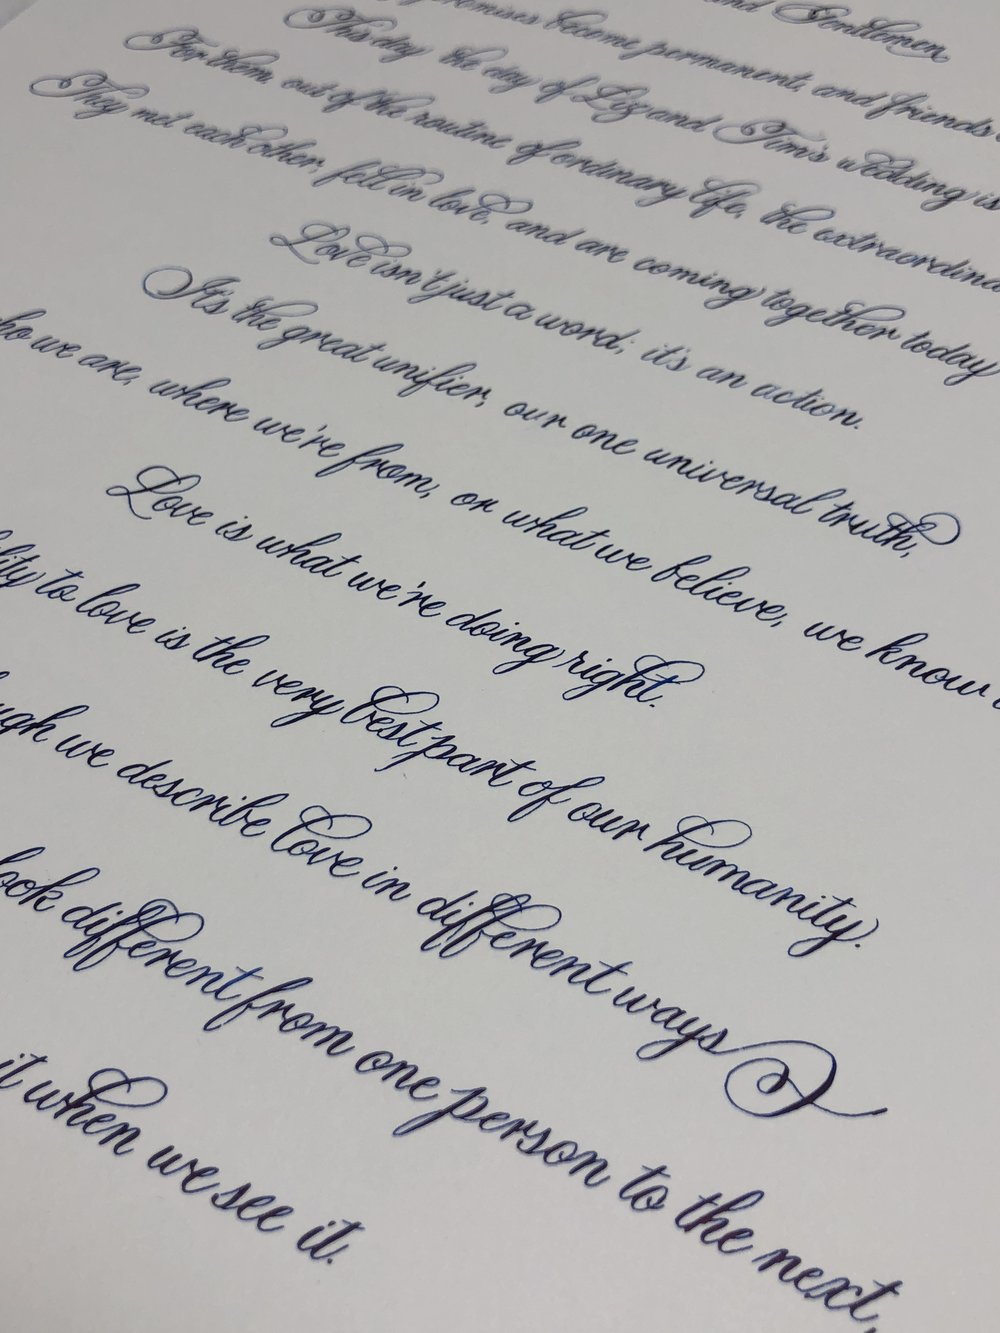 Central PA, York PA, JesSmith Designs, custom, wedding, invitations, bridal, Harrisburg, hanover, calligraphy, baltimore, wedding invitations, lancaster, gettysburg, 07-10 05.46.54.jpg